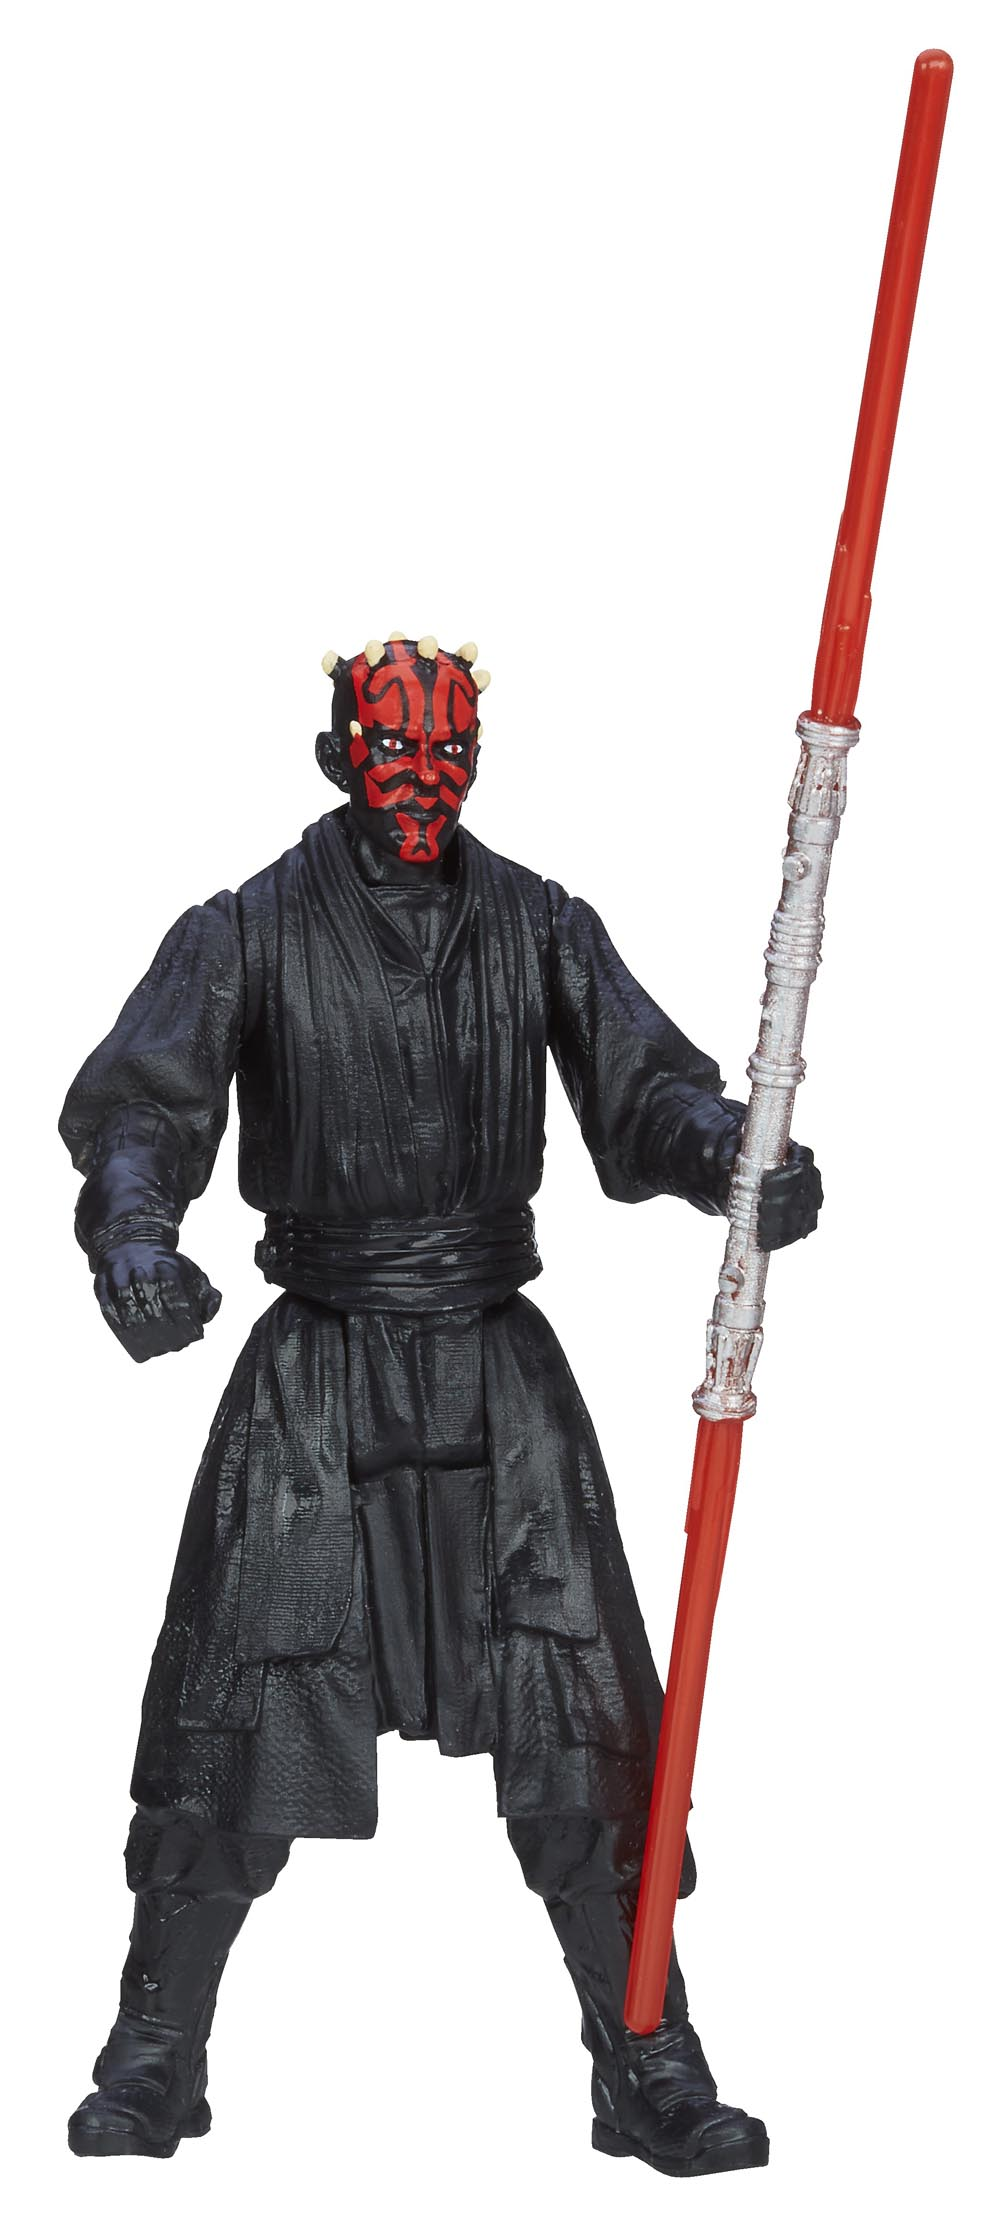 sagalegends_2014wave2_darthmaul_loose.jpg